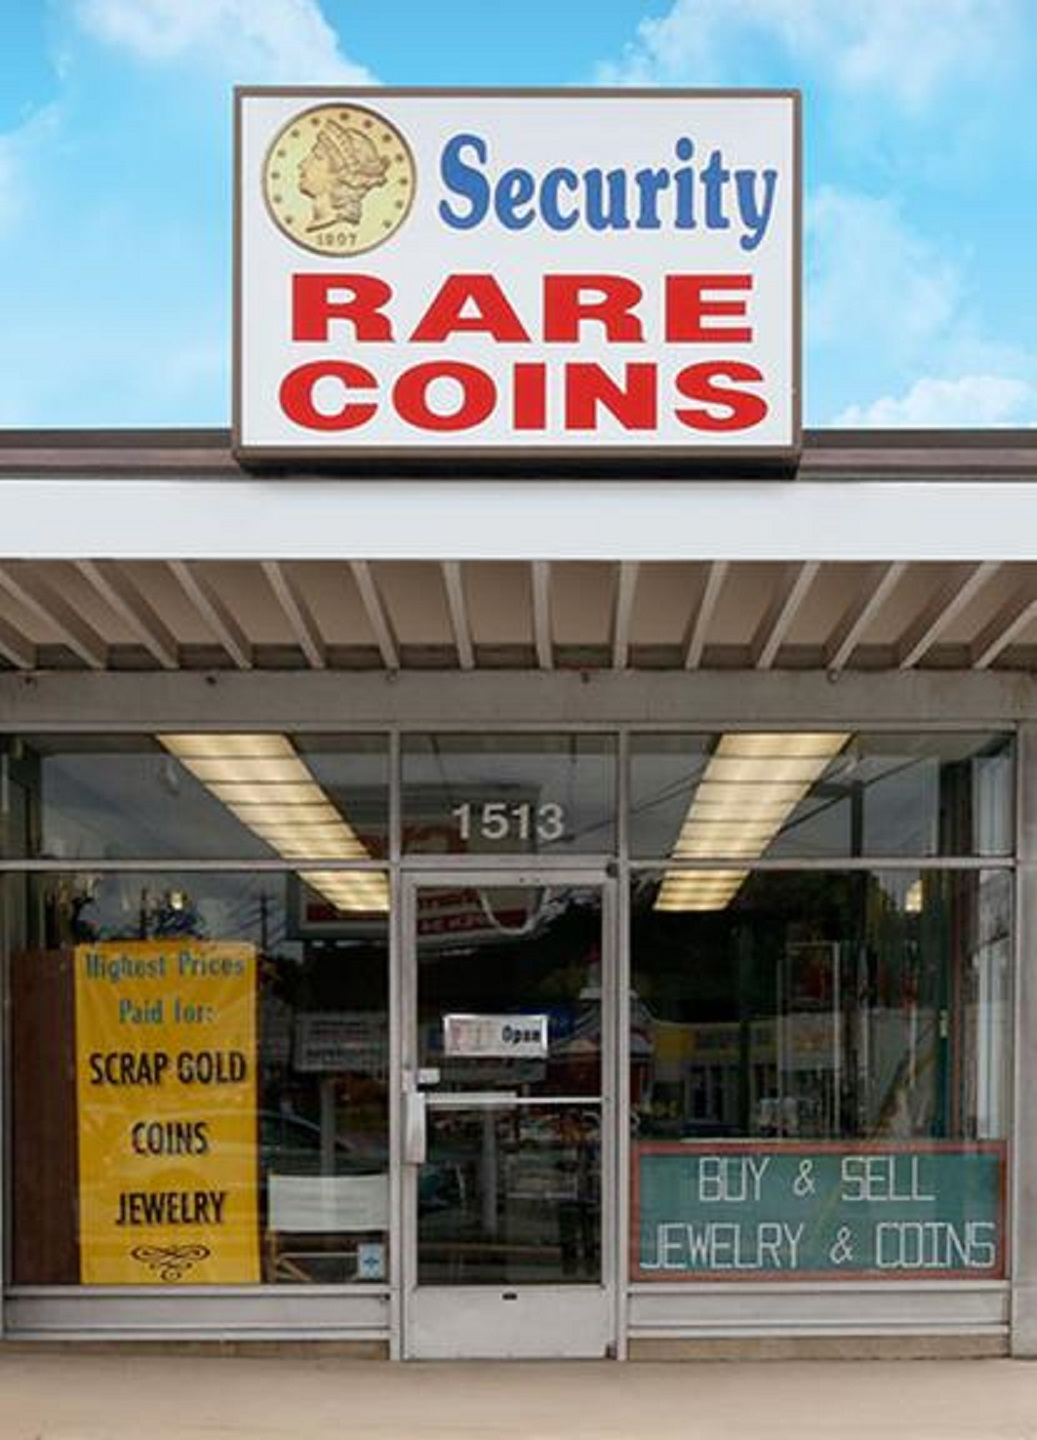 Security Rare Coins image 1